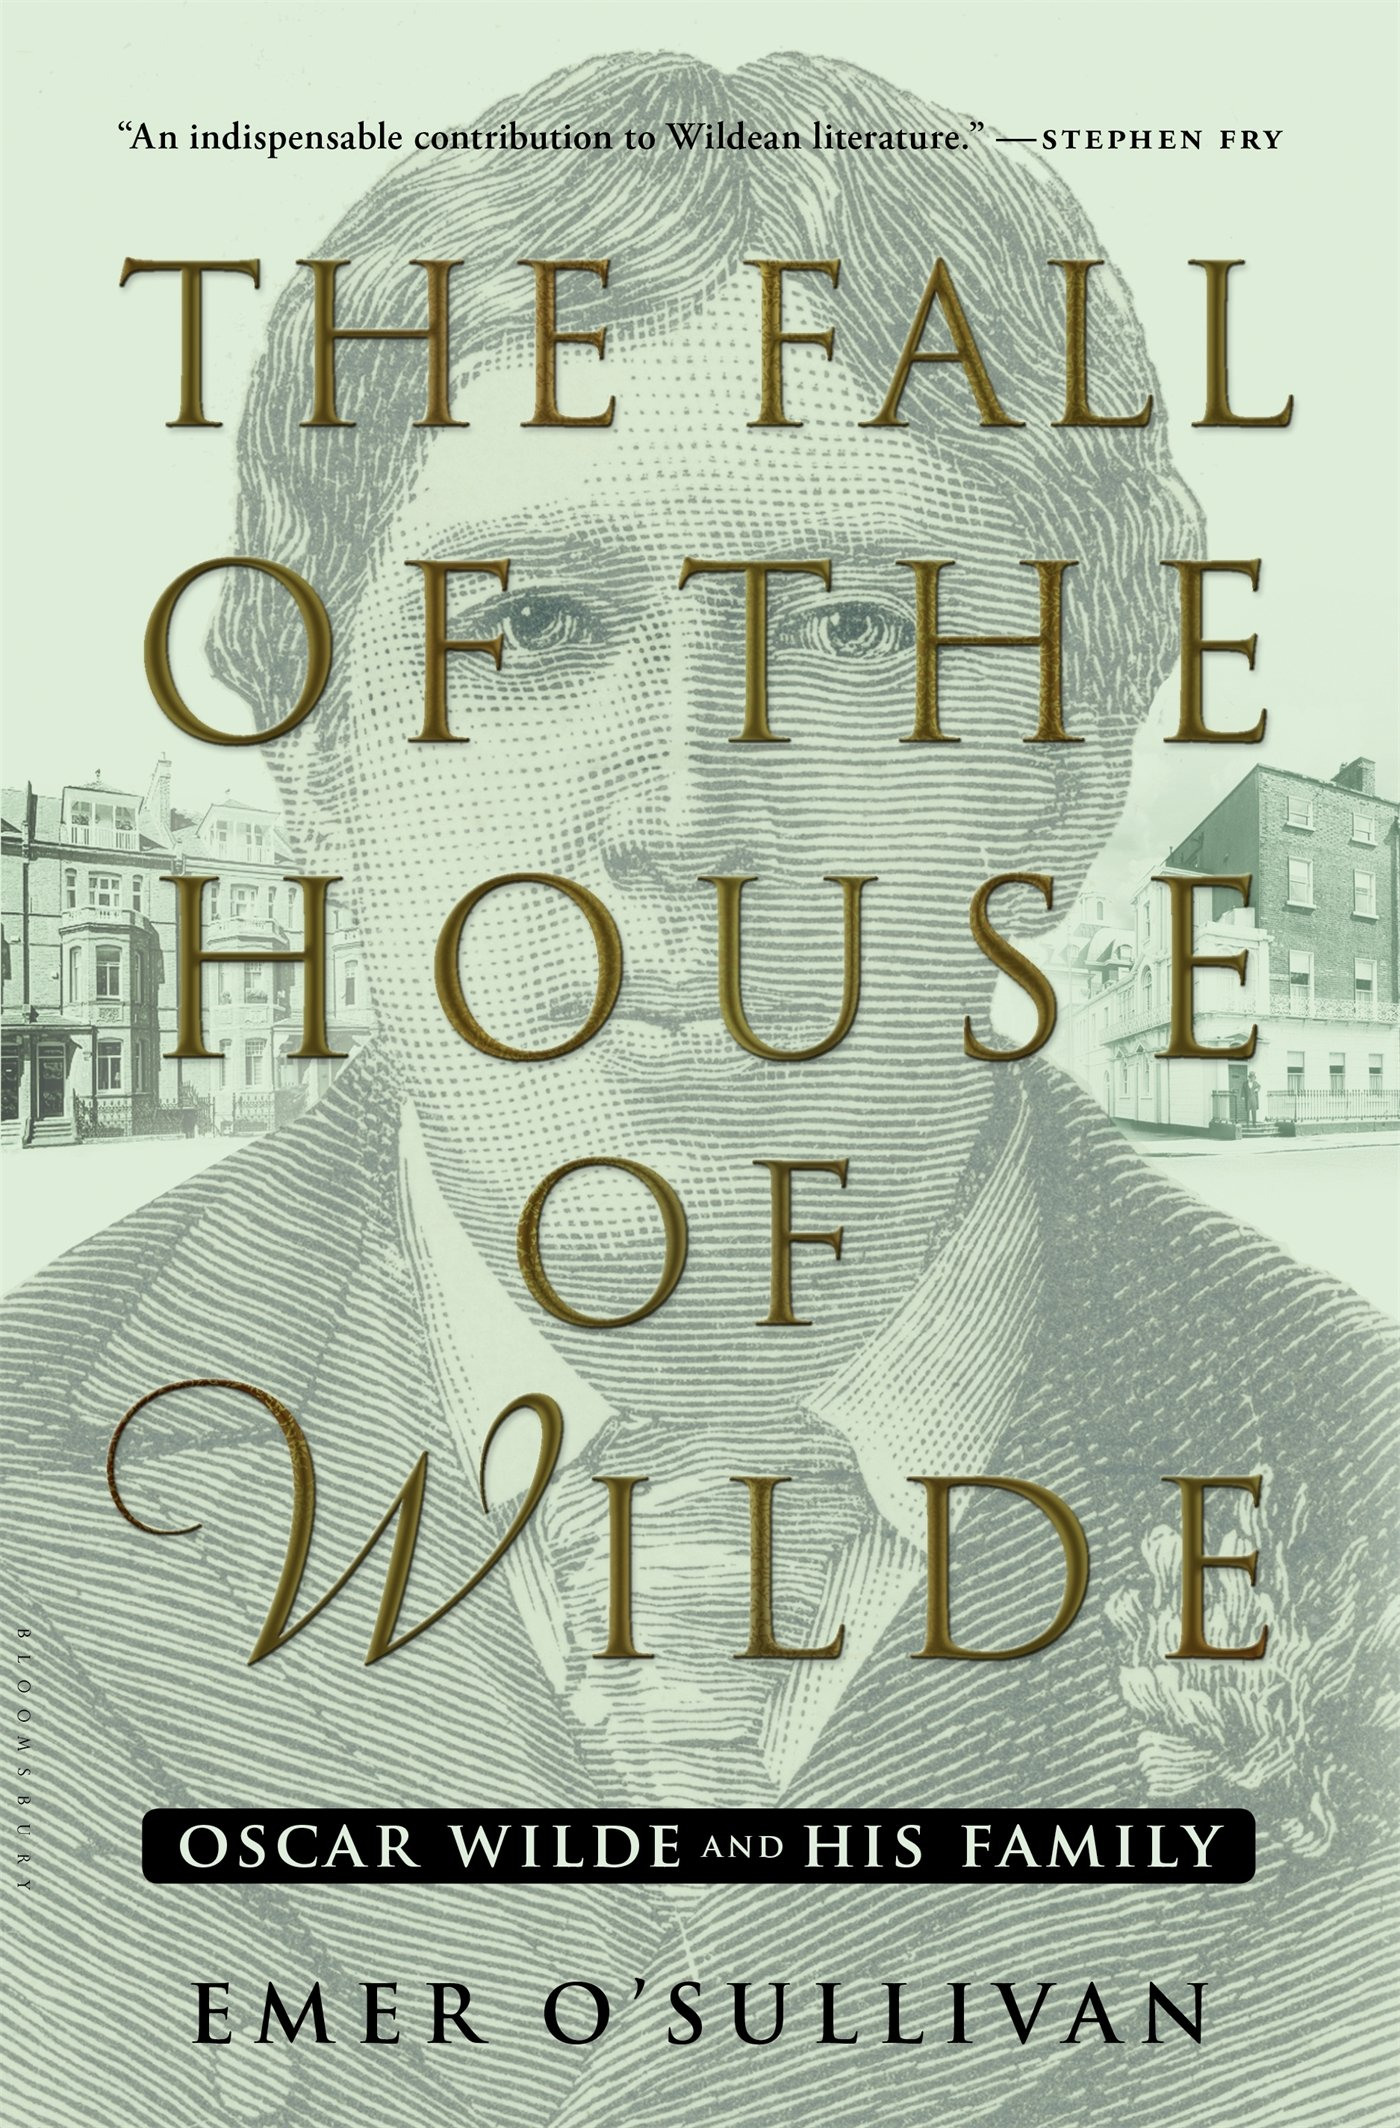 The fall of the house of wilde oscar wilde and his family emer o the fall of the house of wilde oscar wilde and his family emer osullivan 9781608199877 amazon books fandeluxe Epub